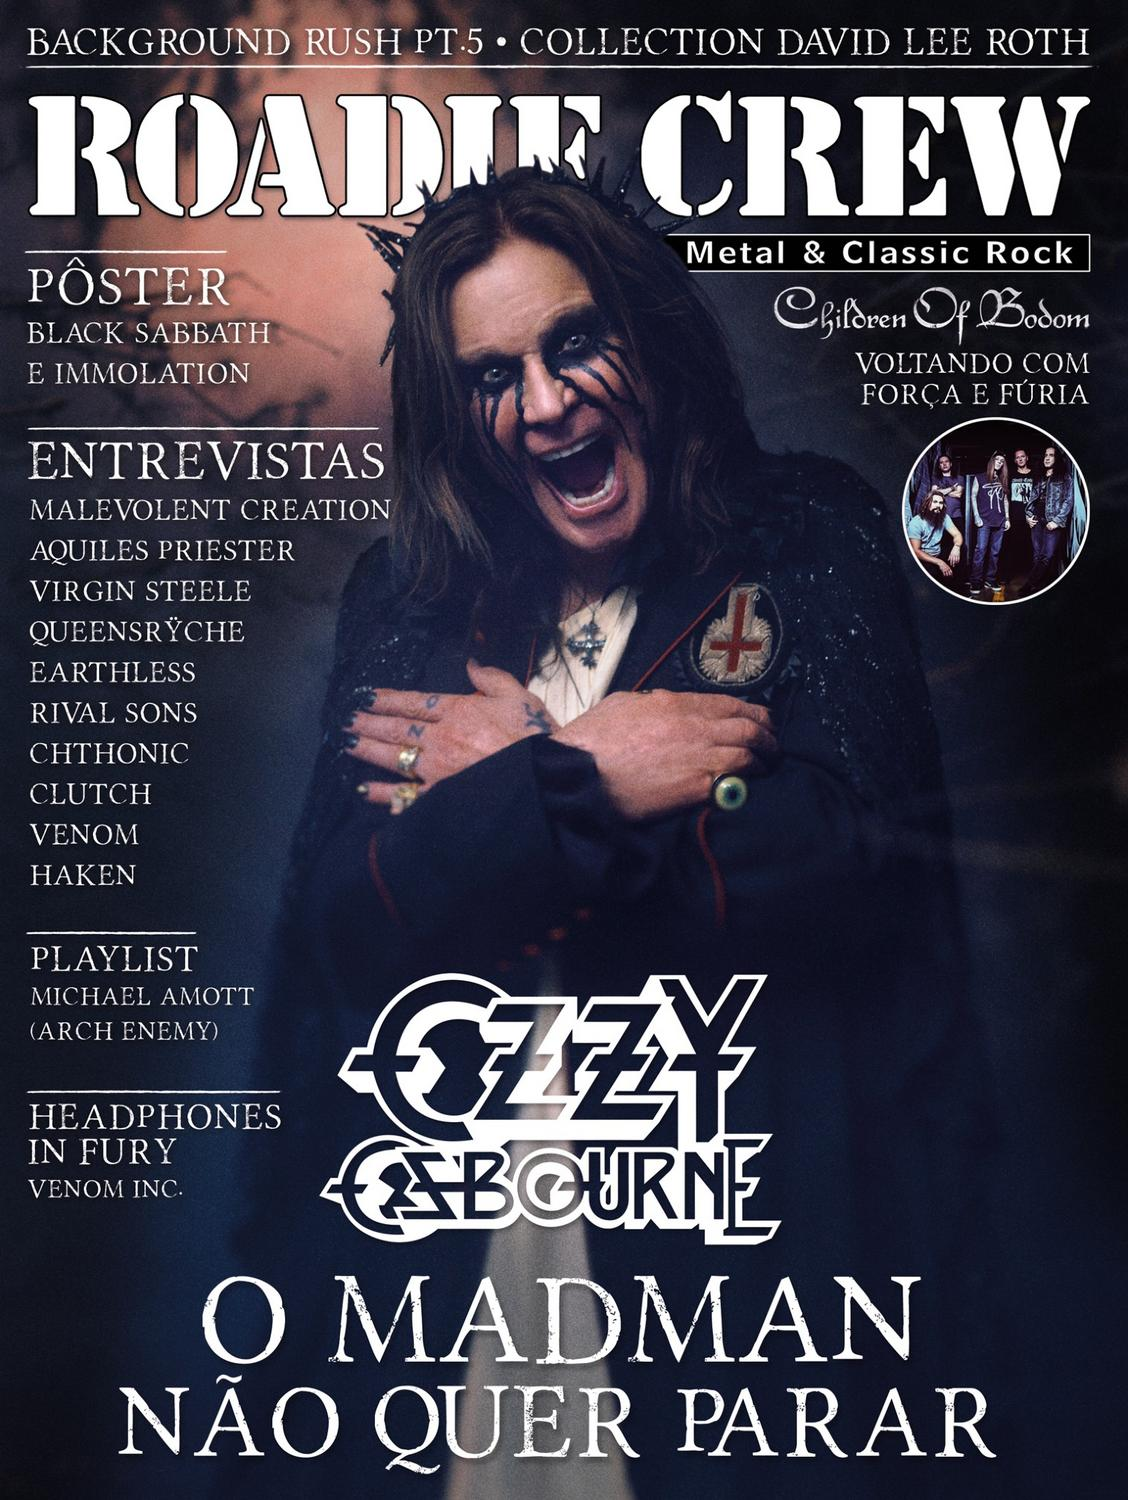 Revista Roadie Crew #242